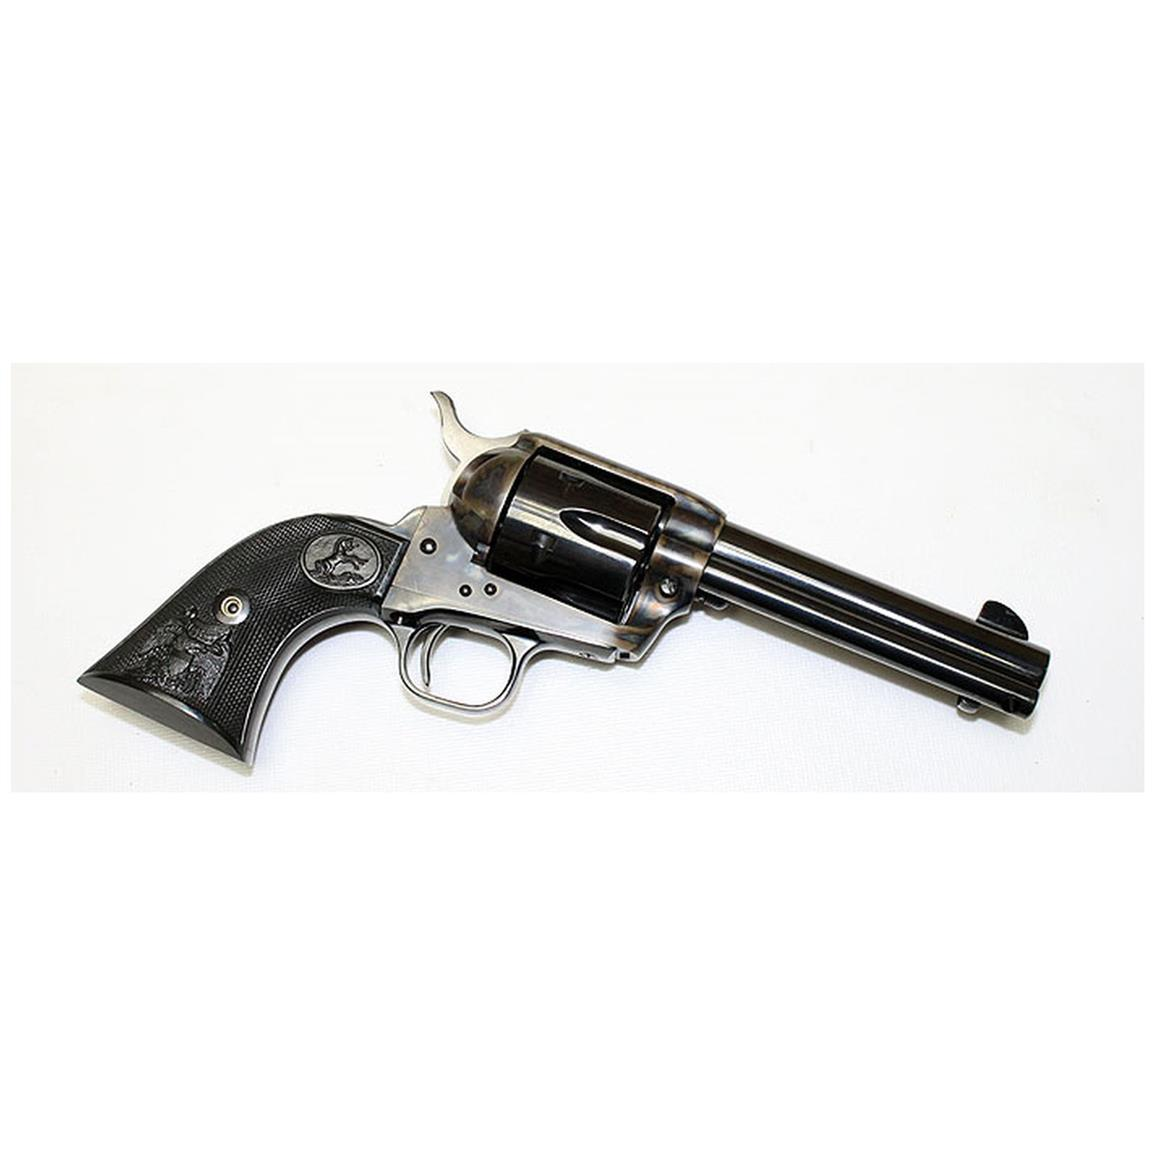 "Colt Single Action Army, Revolver, .45 Colt,  P1856, 98289000904, 5.50"" Barrel, 6-round"